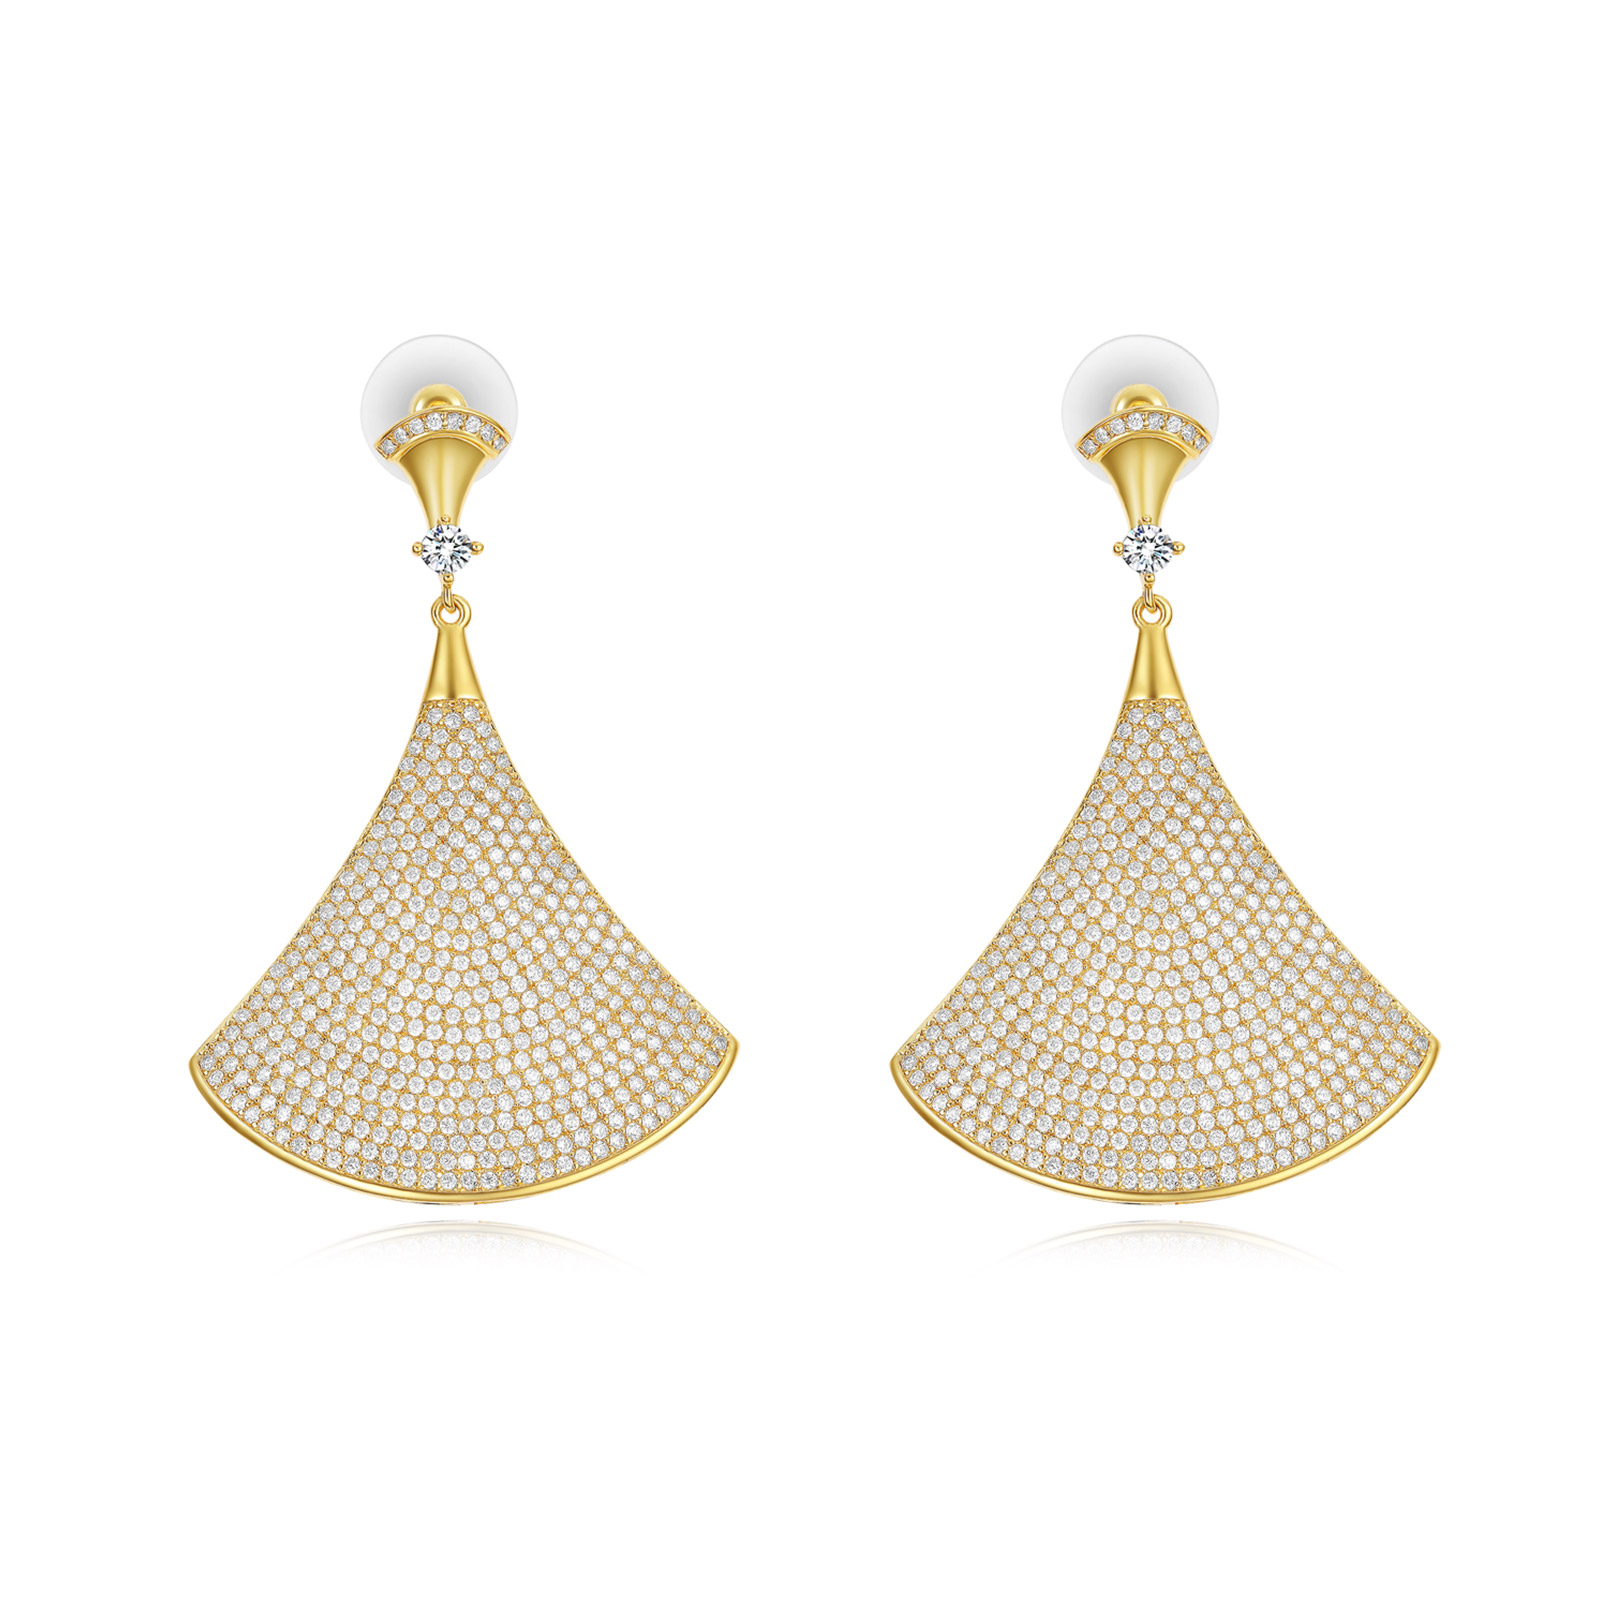 made earrings buy wear ziveg with sterling india swarovski zirconia silver daily online category